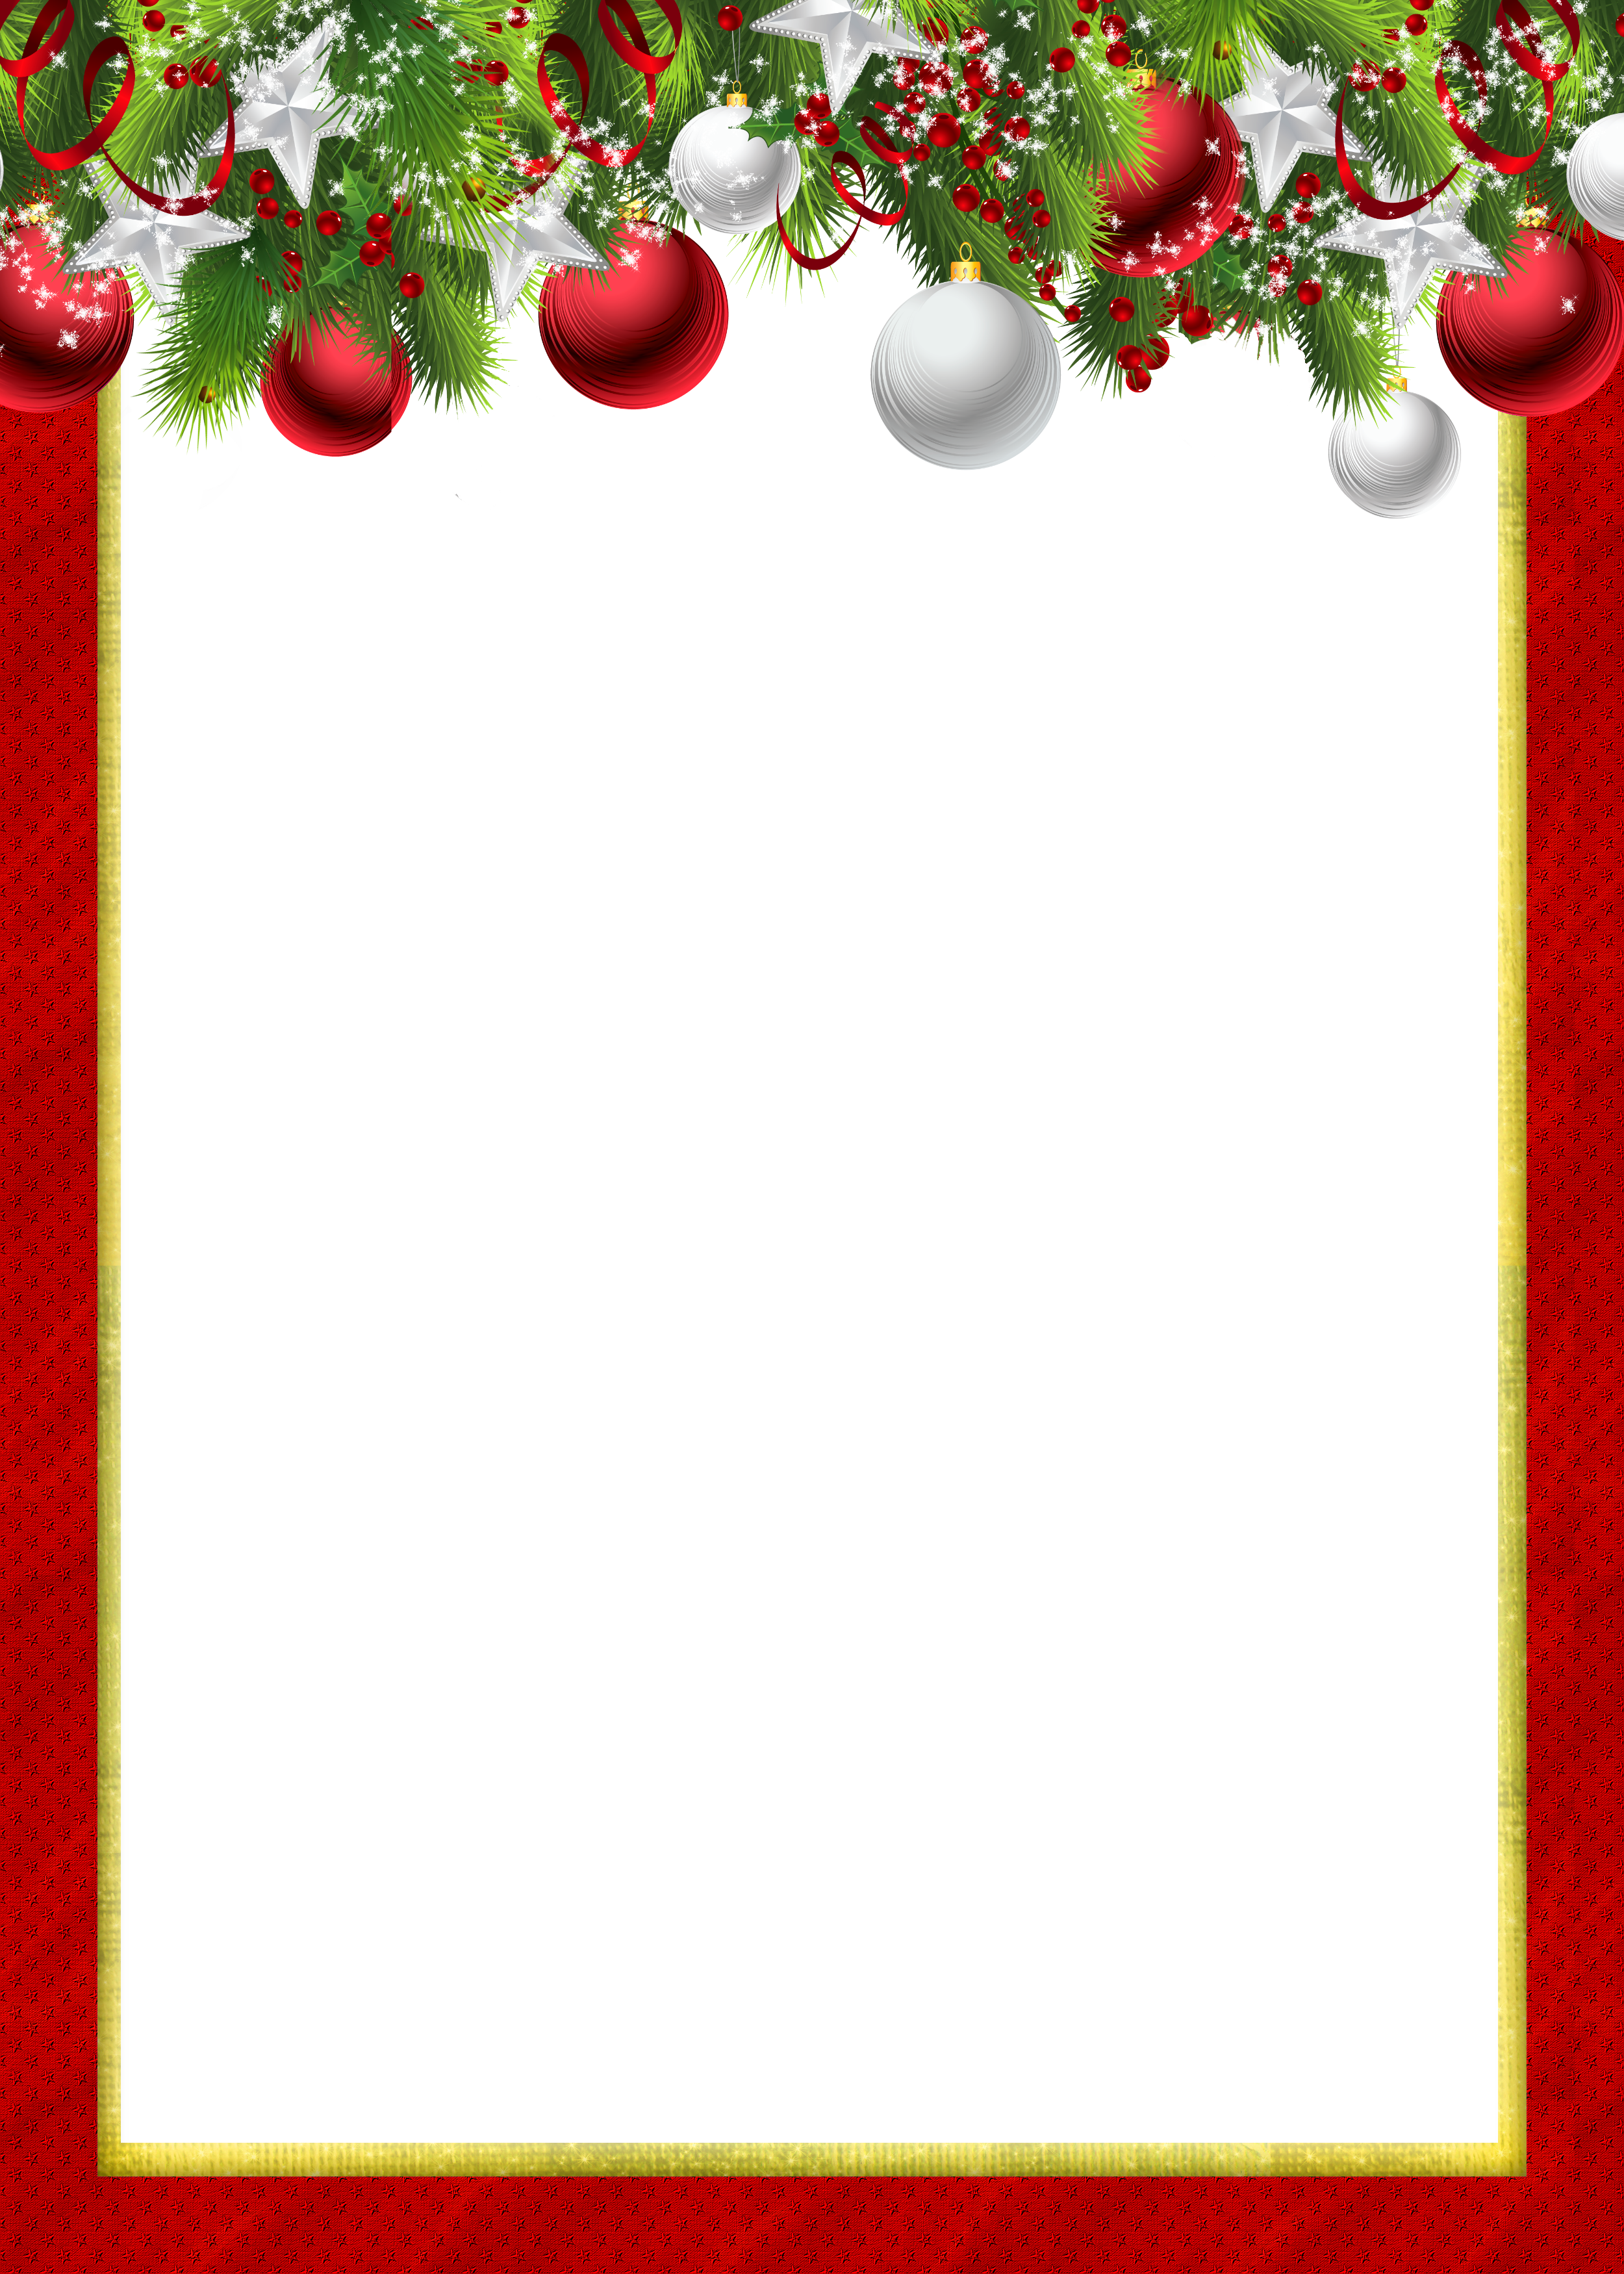 Image Royalty Free Stock Christmas Picture Frame Clipart Christmas Frames And Borders Red Full Size Png Download Seekpng